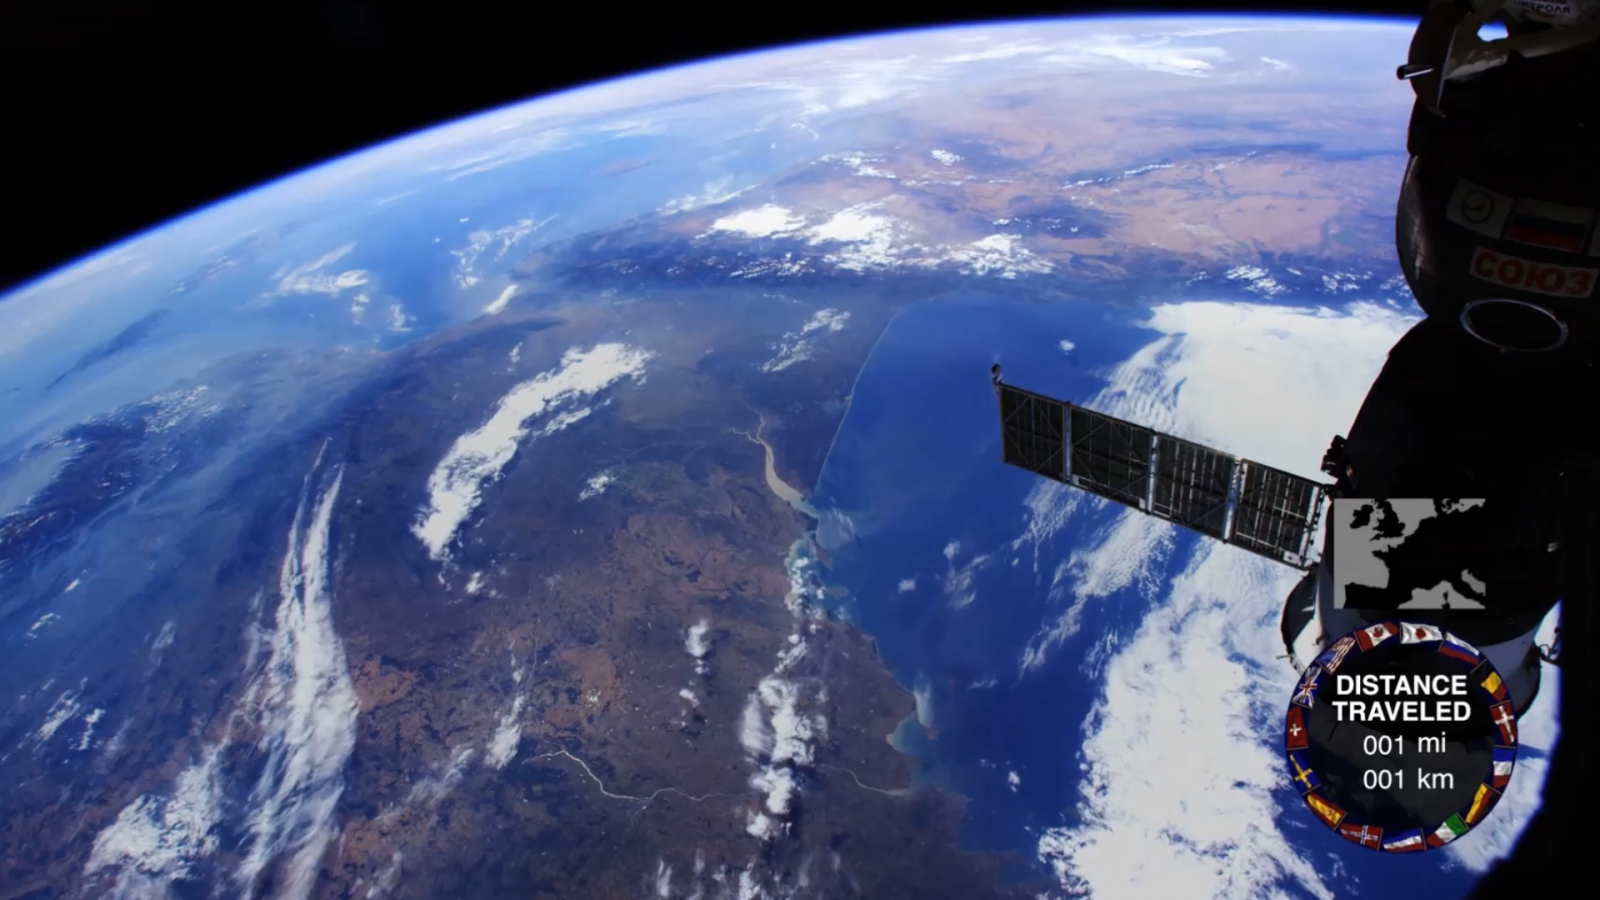 nasa-footage-shows-ultra-high-definition-view-of-europe-from-space